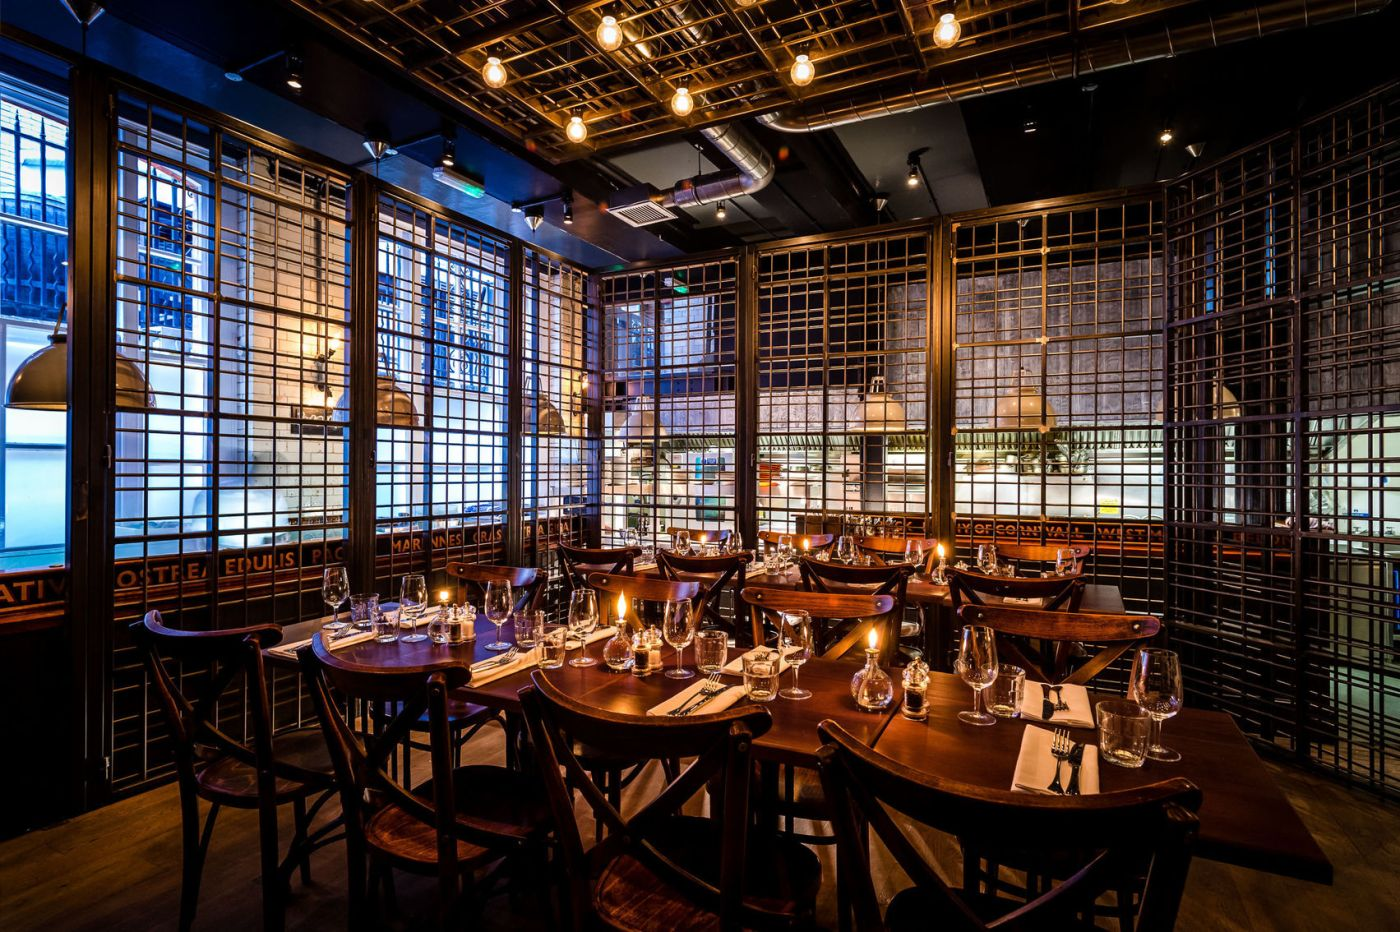 The Cage at The Wright Brothers is a unique provate dining area. The two tables of 8 are in the middle a human-sized lobster cage.